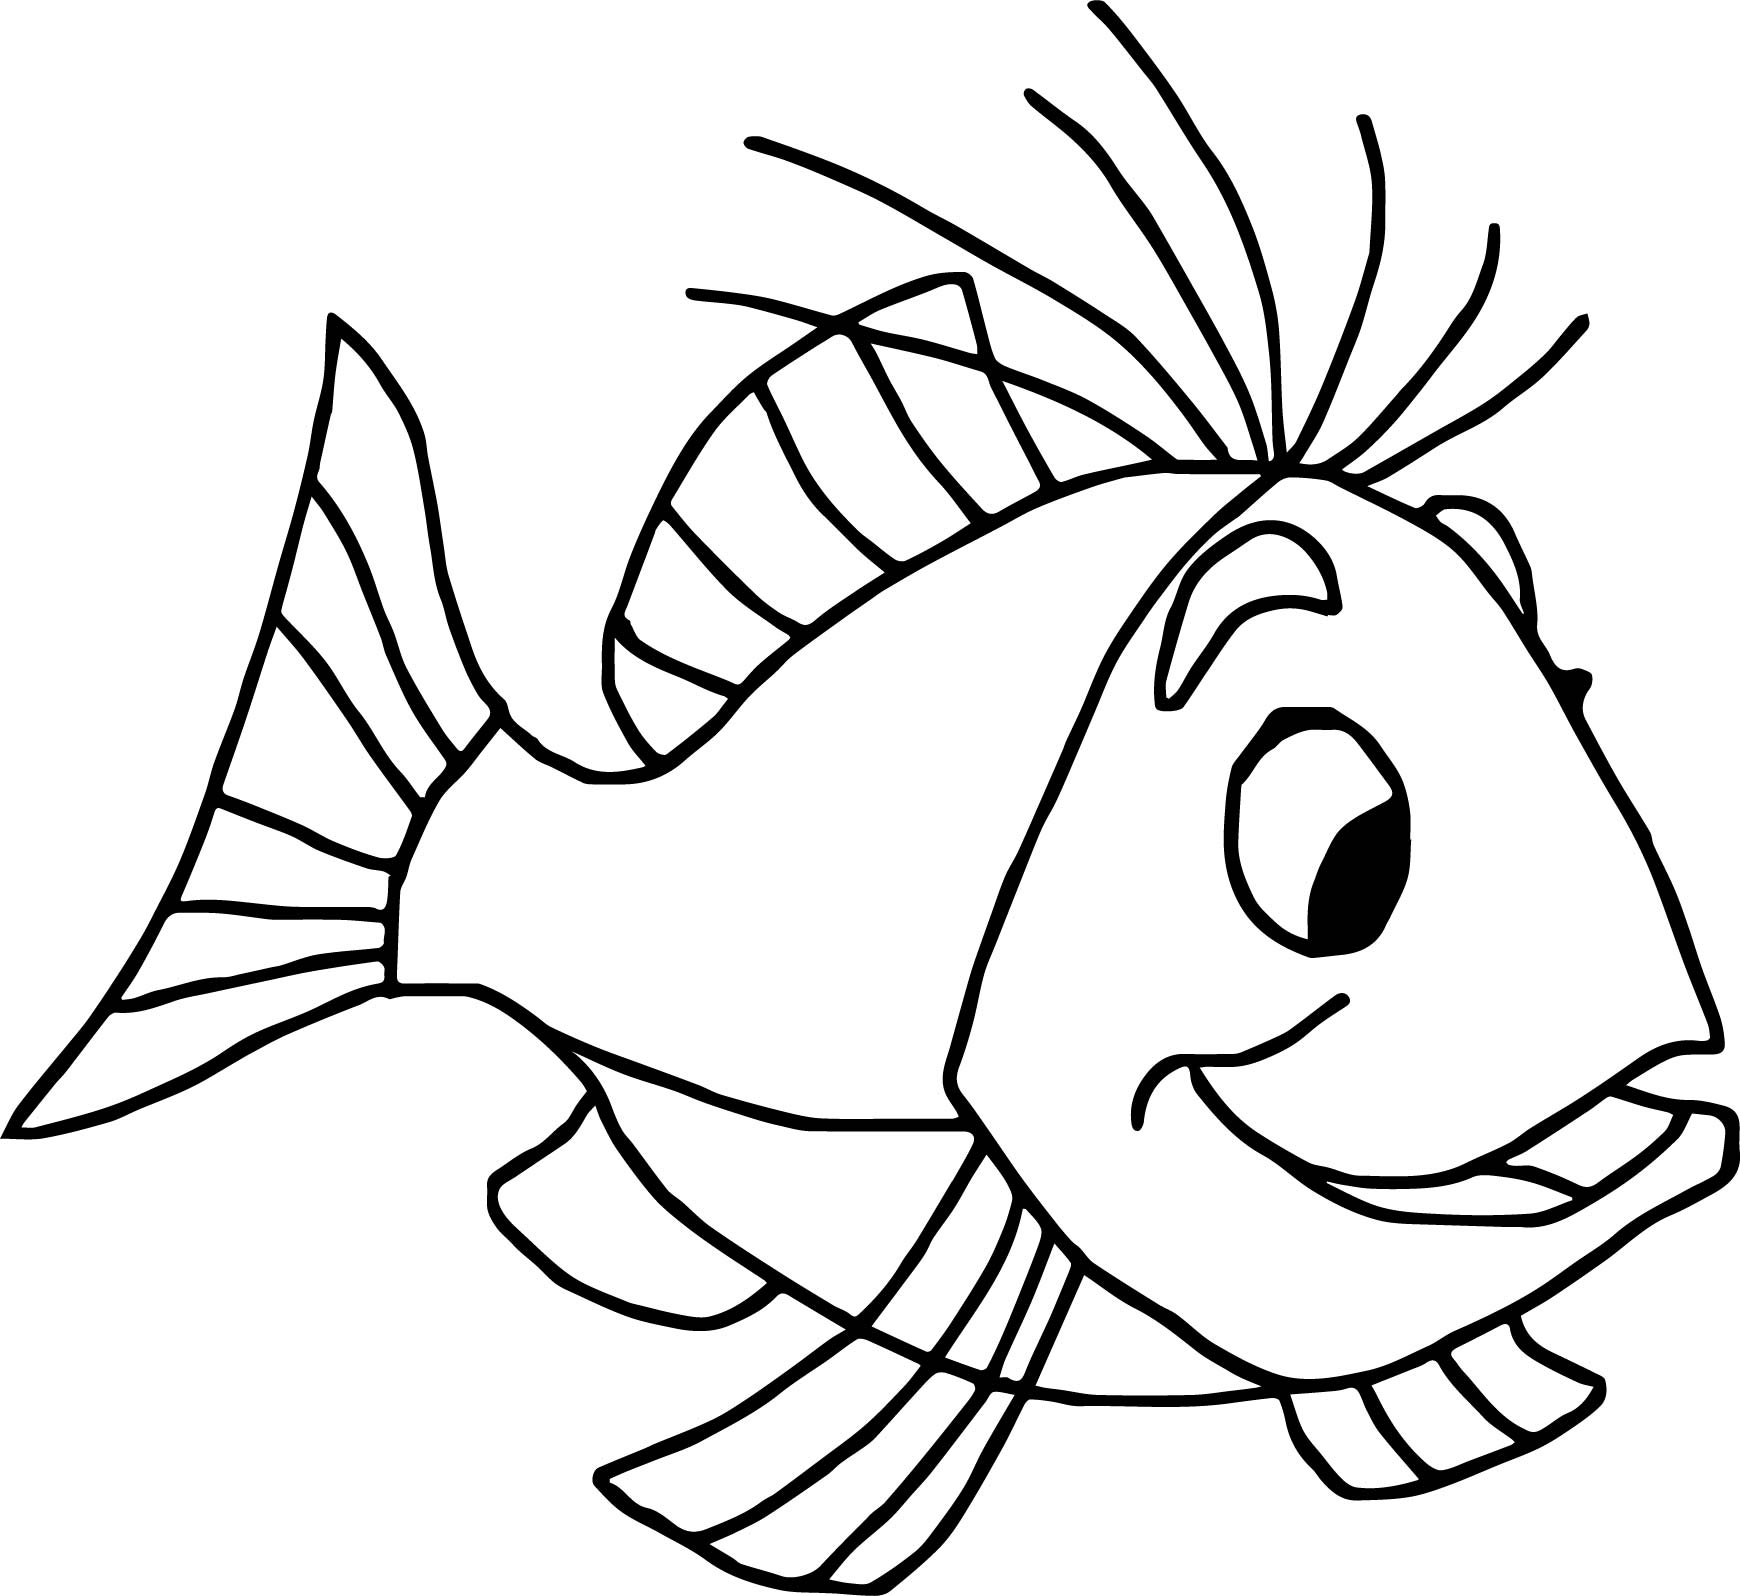 coloring pages stones - photo#44